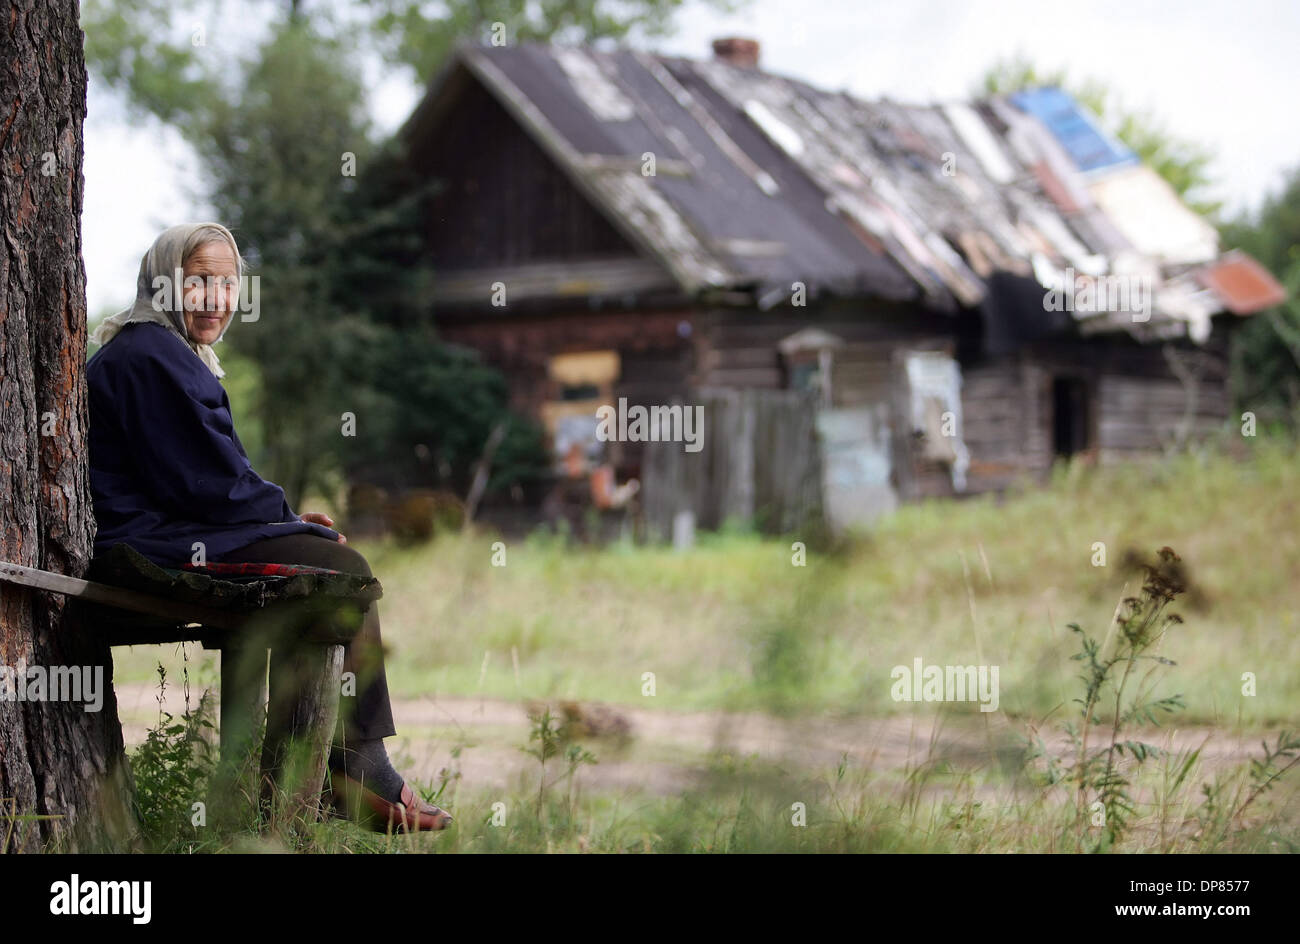 Belarus village in Gomel region of Belarus. People of this belarus village also suffered of Chernobyl disaster in April 1986.(Credit Image: © PhotoXpress/ZUMA Press) RESTRICTIONS: North and South America Rights ONLY! - Stock Image